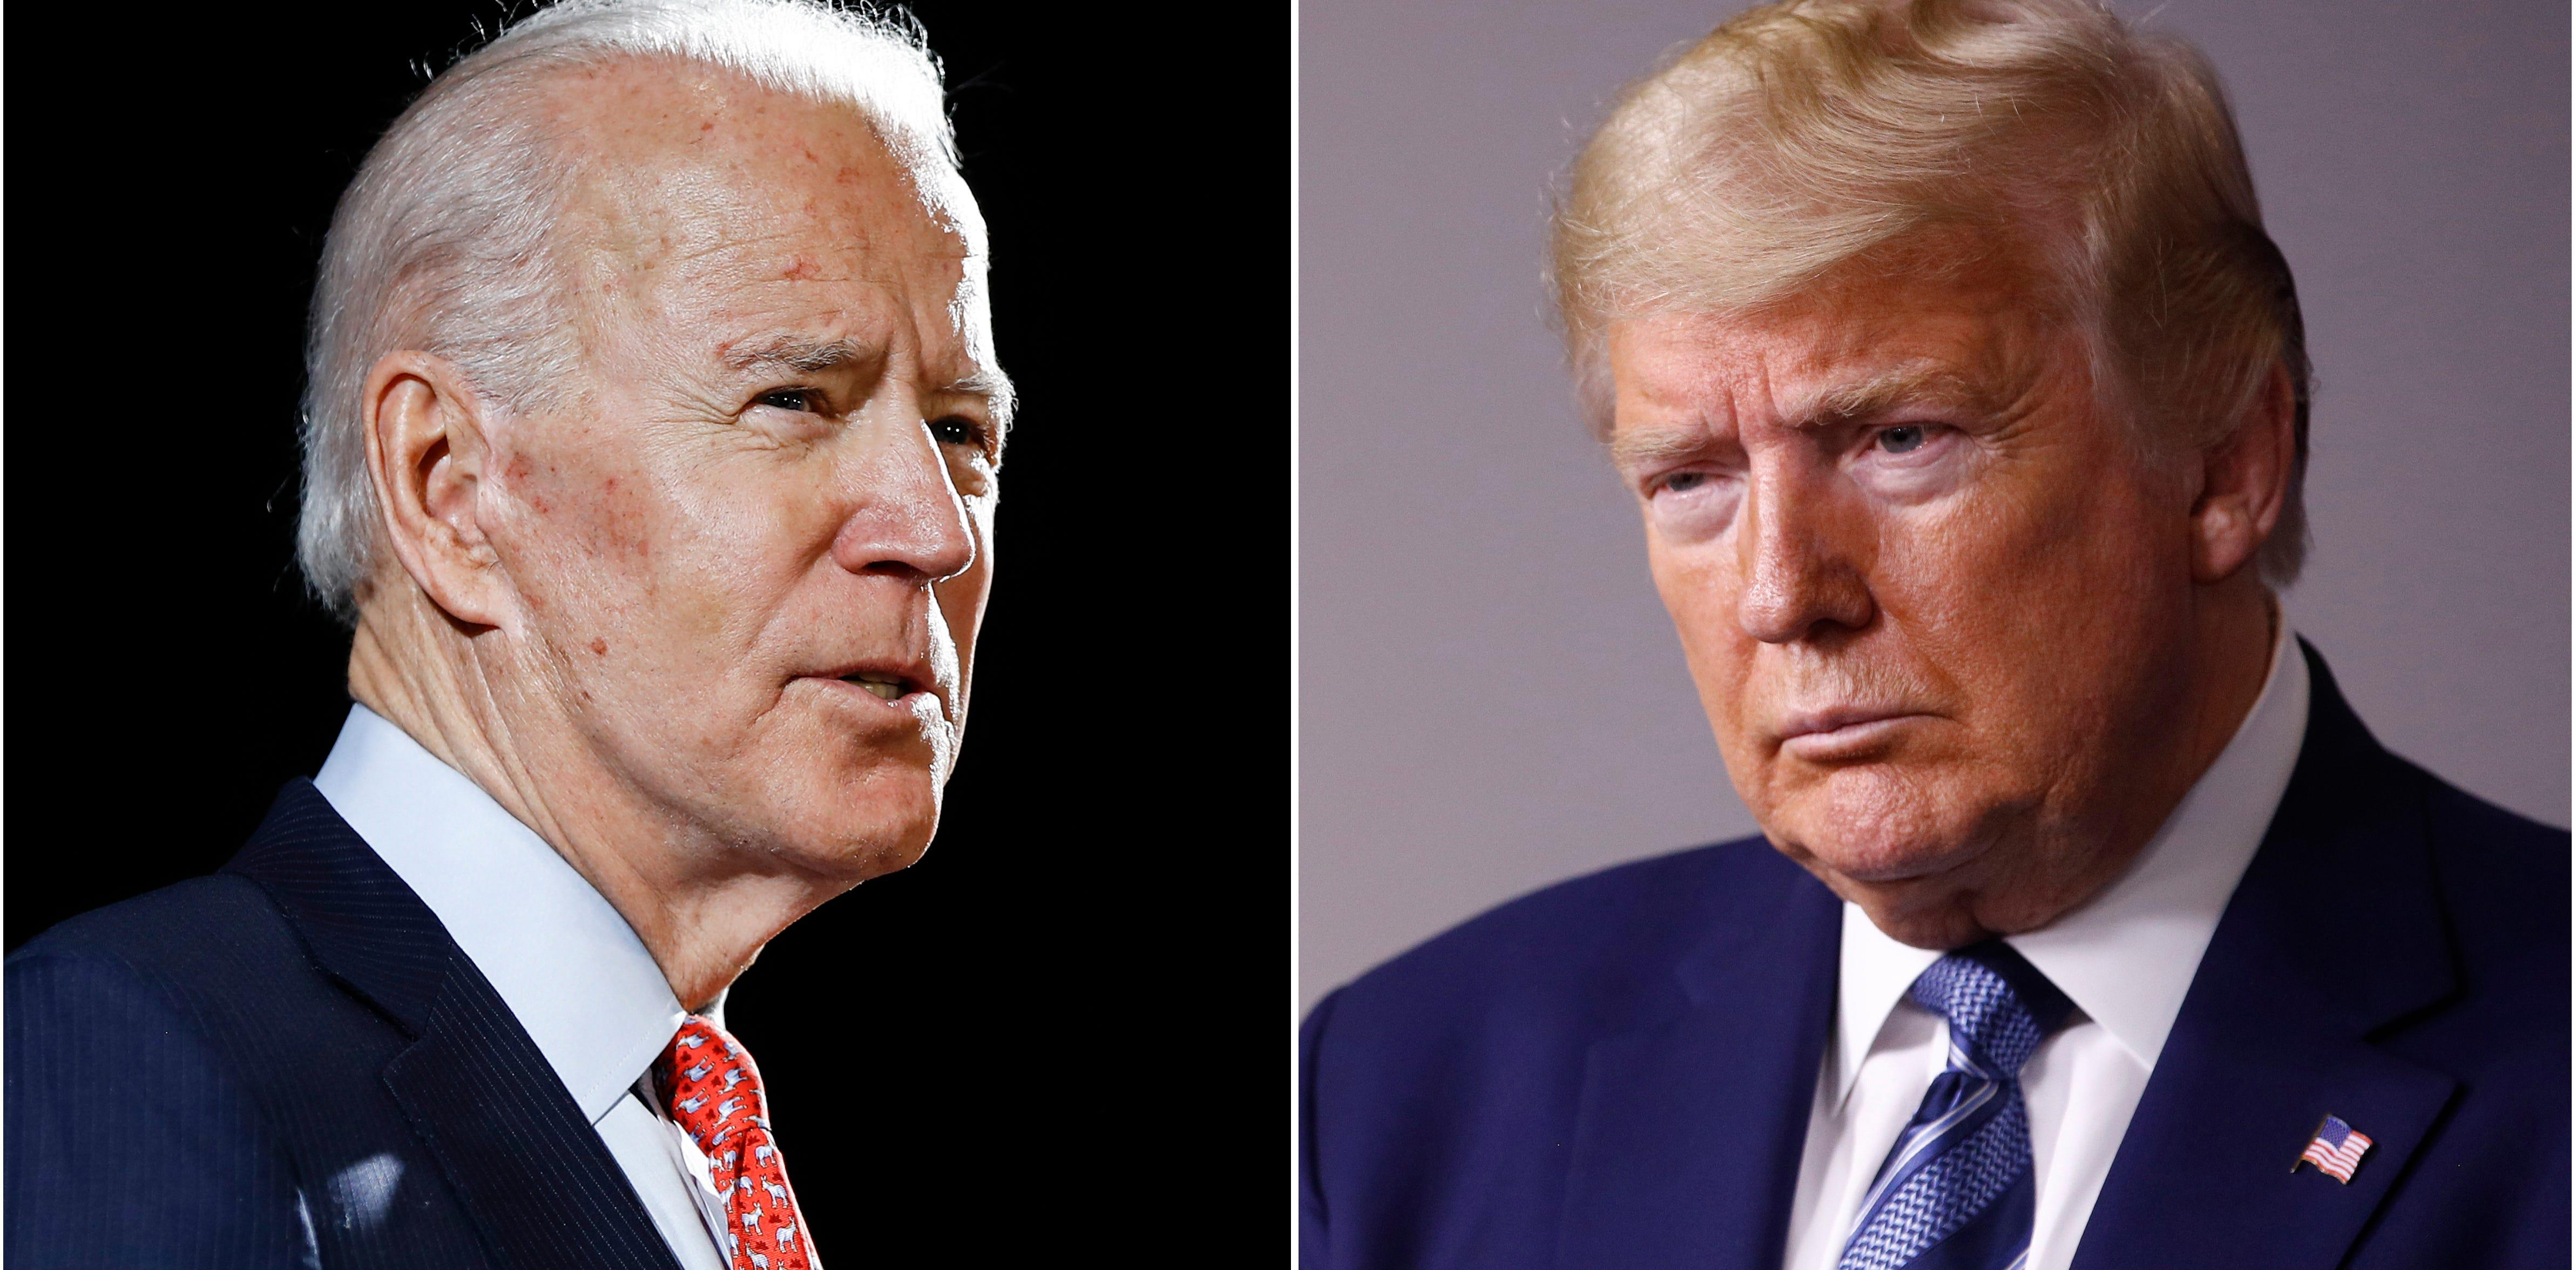 2020 election live updates: Biden and Trump prepare for first presidential debate, Pelosi outlines scenario in which House decides election